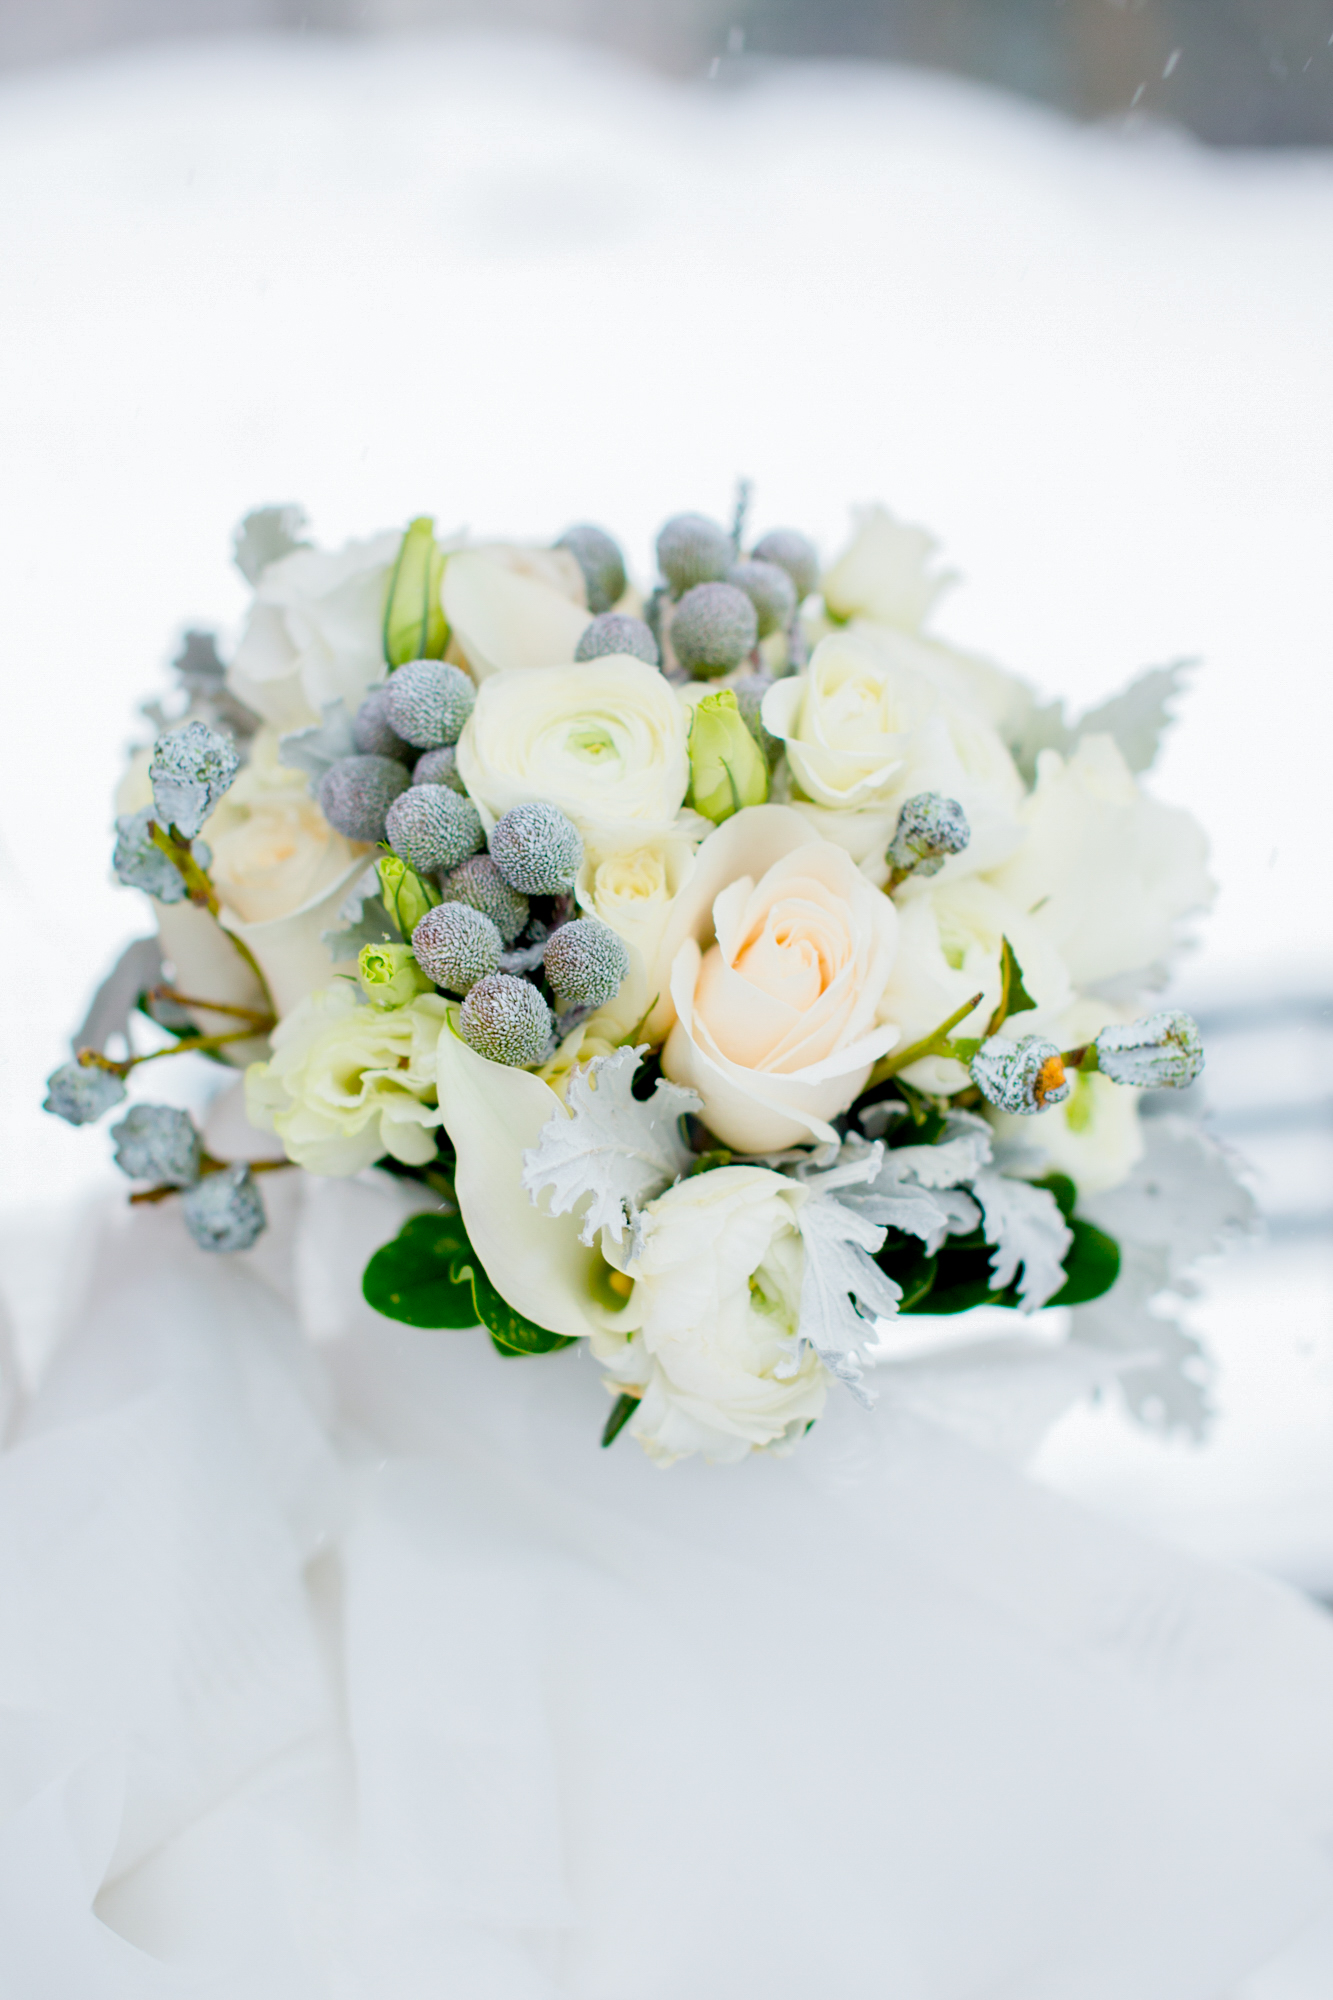 073_CarlyGaebe_SteadfastStudio_WeddingPhotography_NewYorkCity_CentralPark_Winter_Romantic_Snowing_Bride_Groom_Bouquet_FloralArrangement.jpg